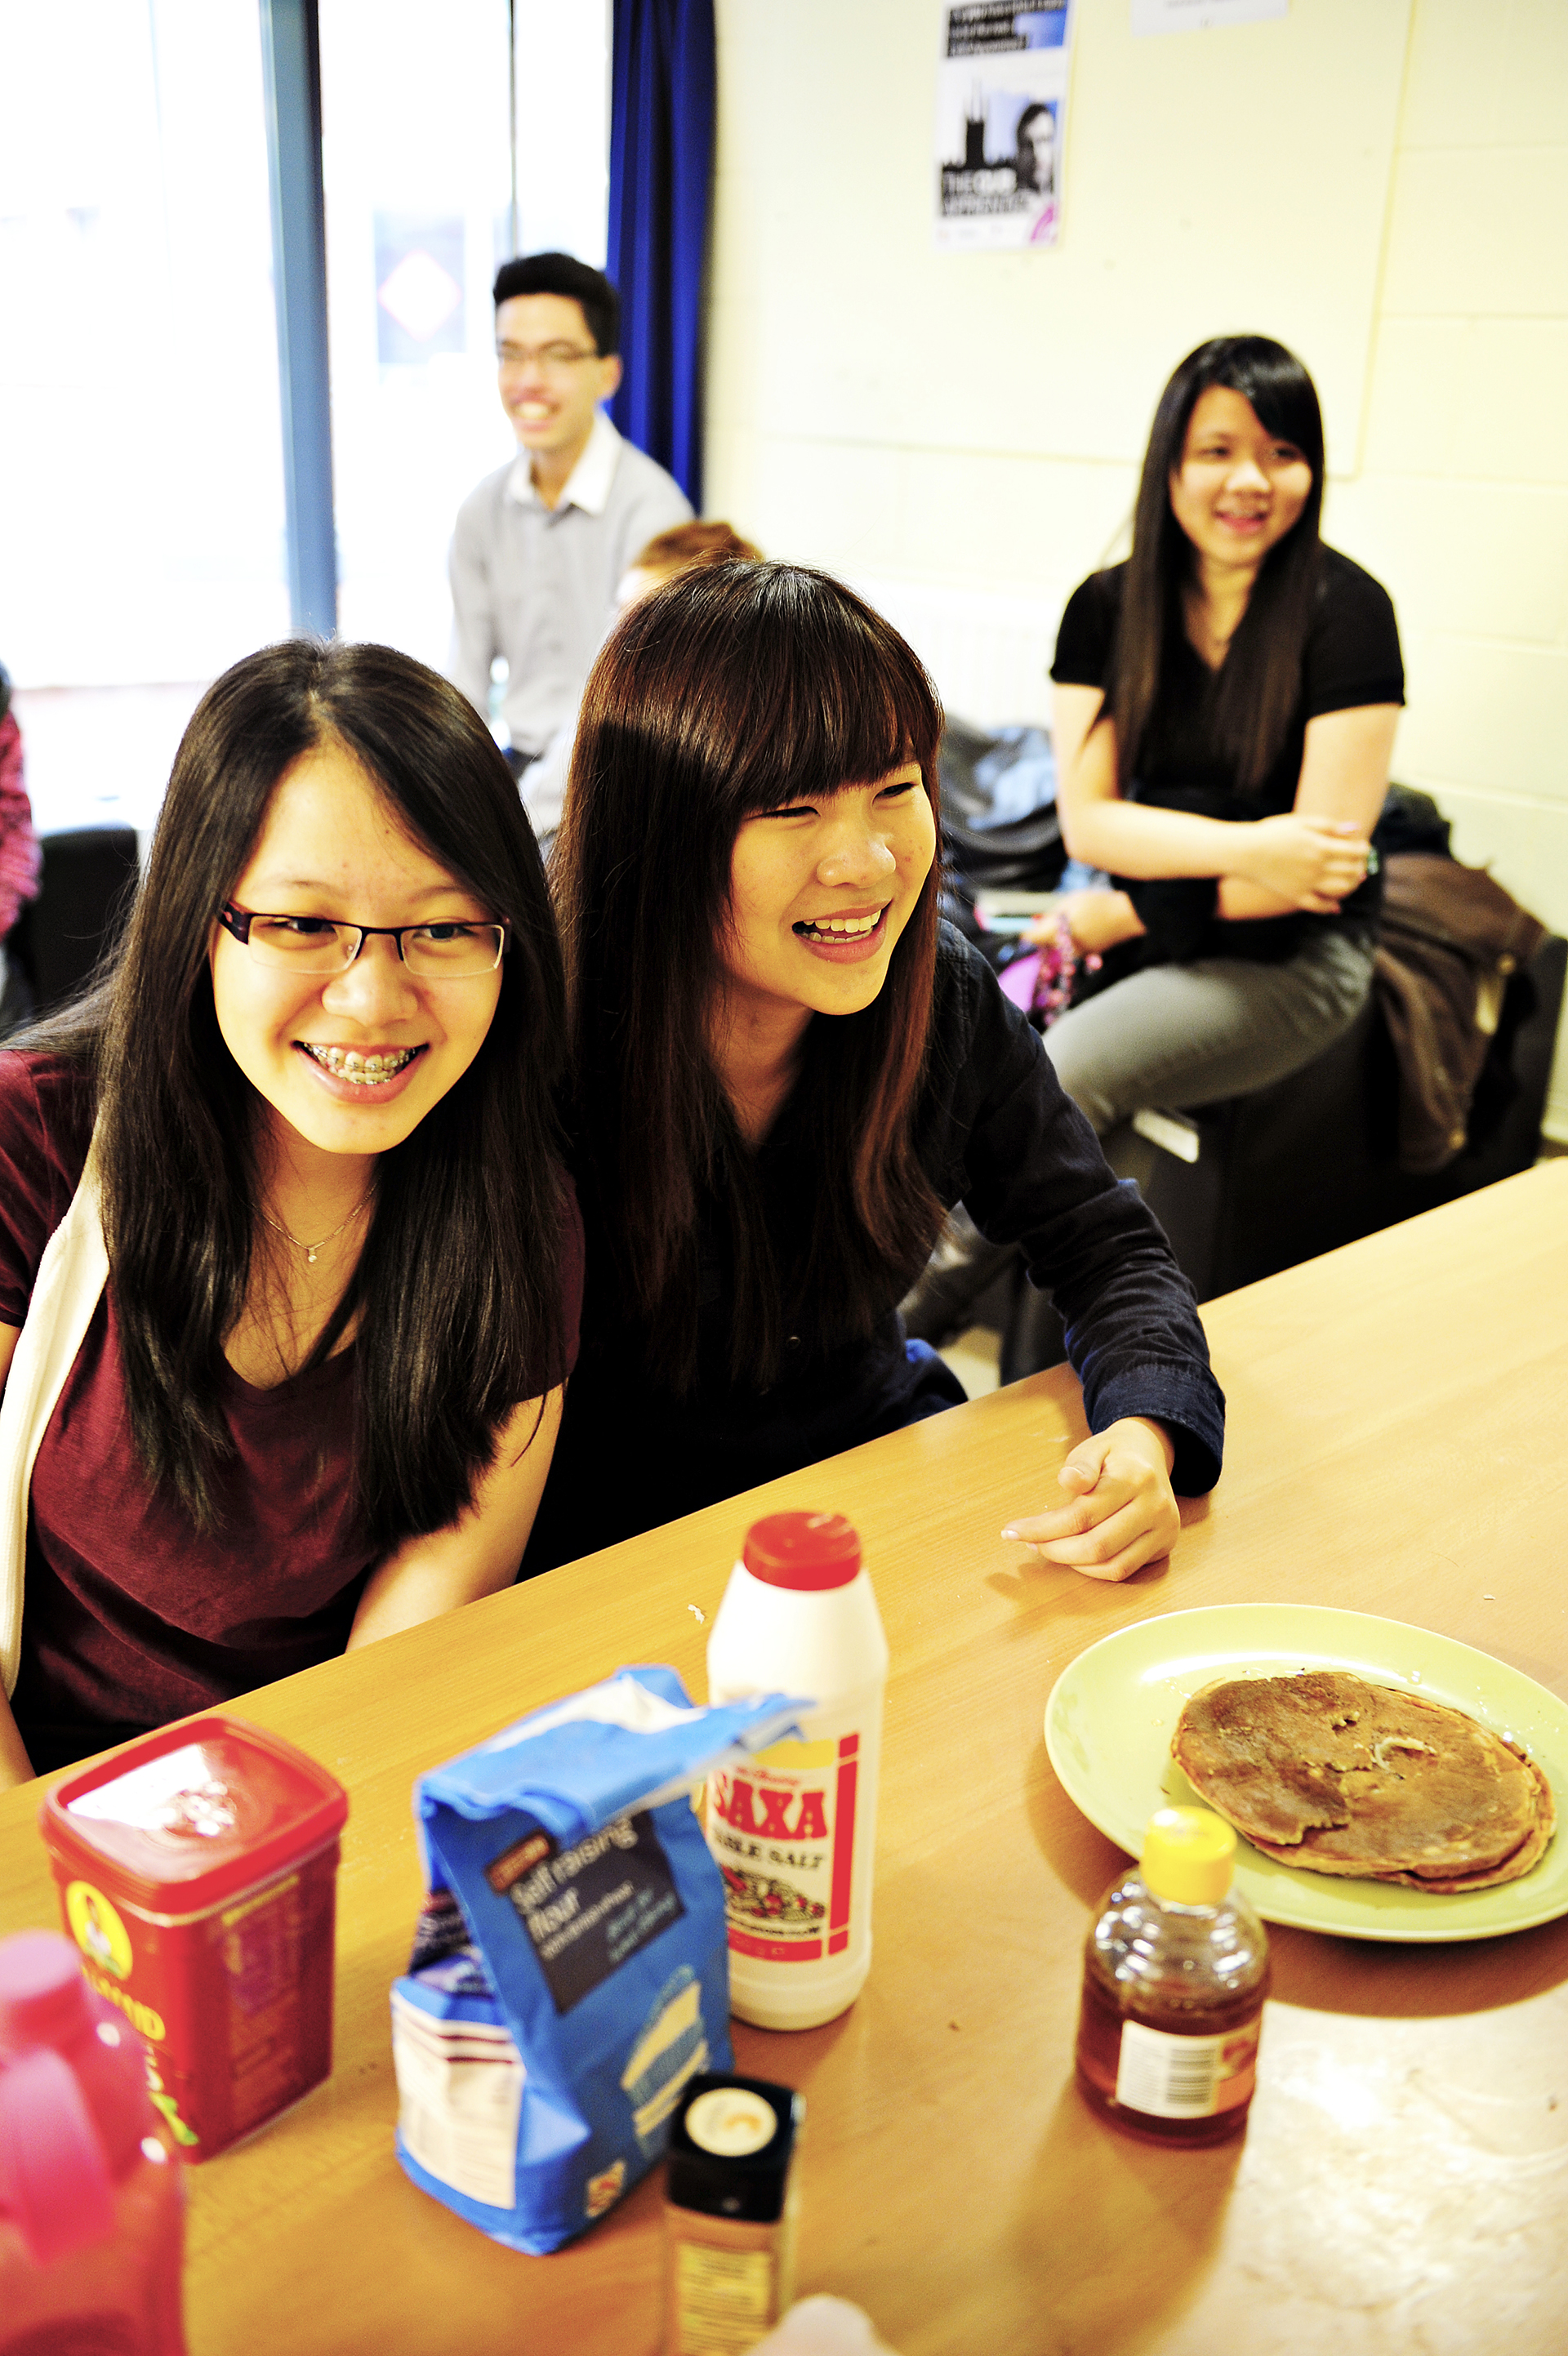 International students enjoying a meal together in shared kitchen area in student accommodation